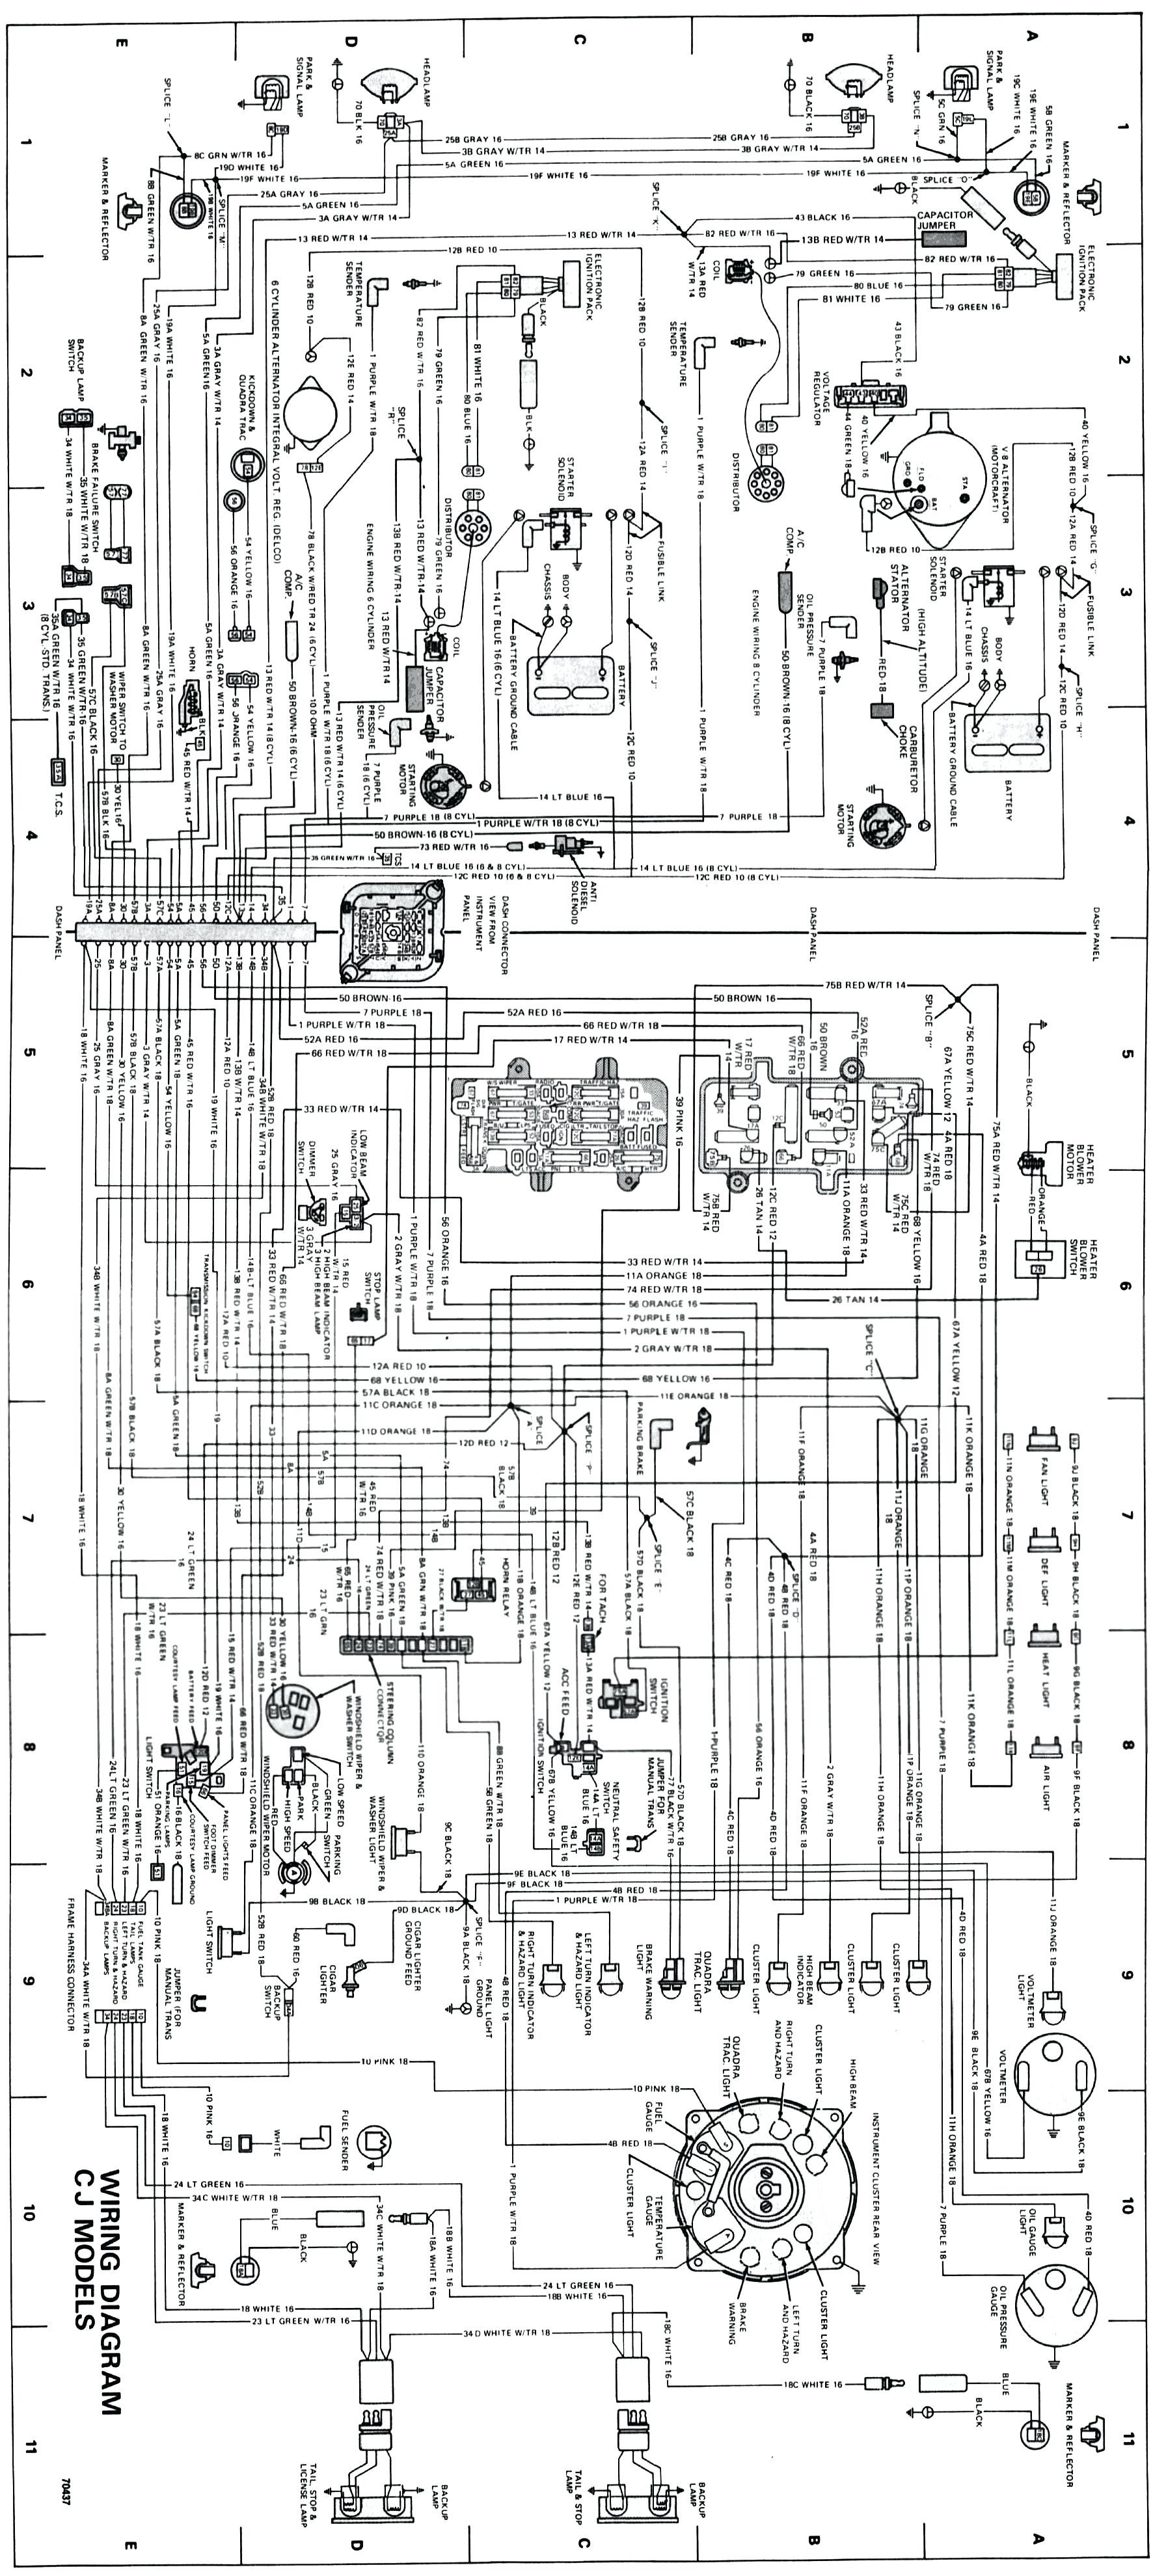 Cj7 Engine Coil Wiring Layout Diagrams Porsche 365 Diagram 1982 Jeep Harness Schematics Rh Caltech Ctp Com Ignition Bosch Connections